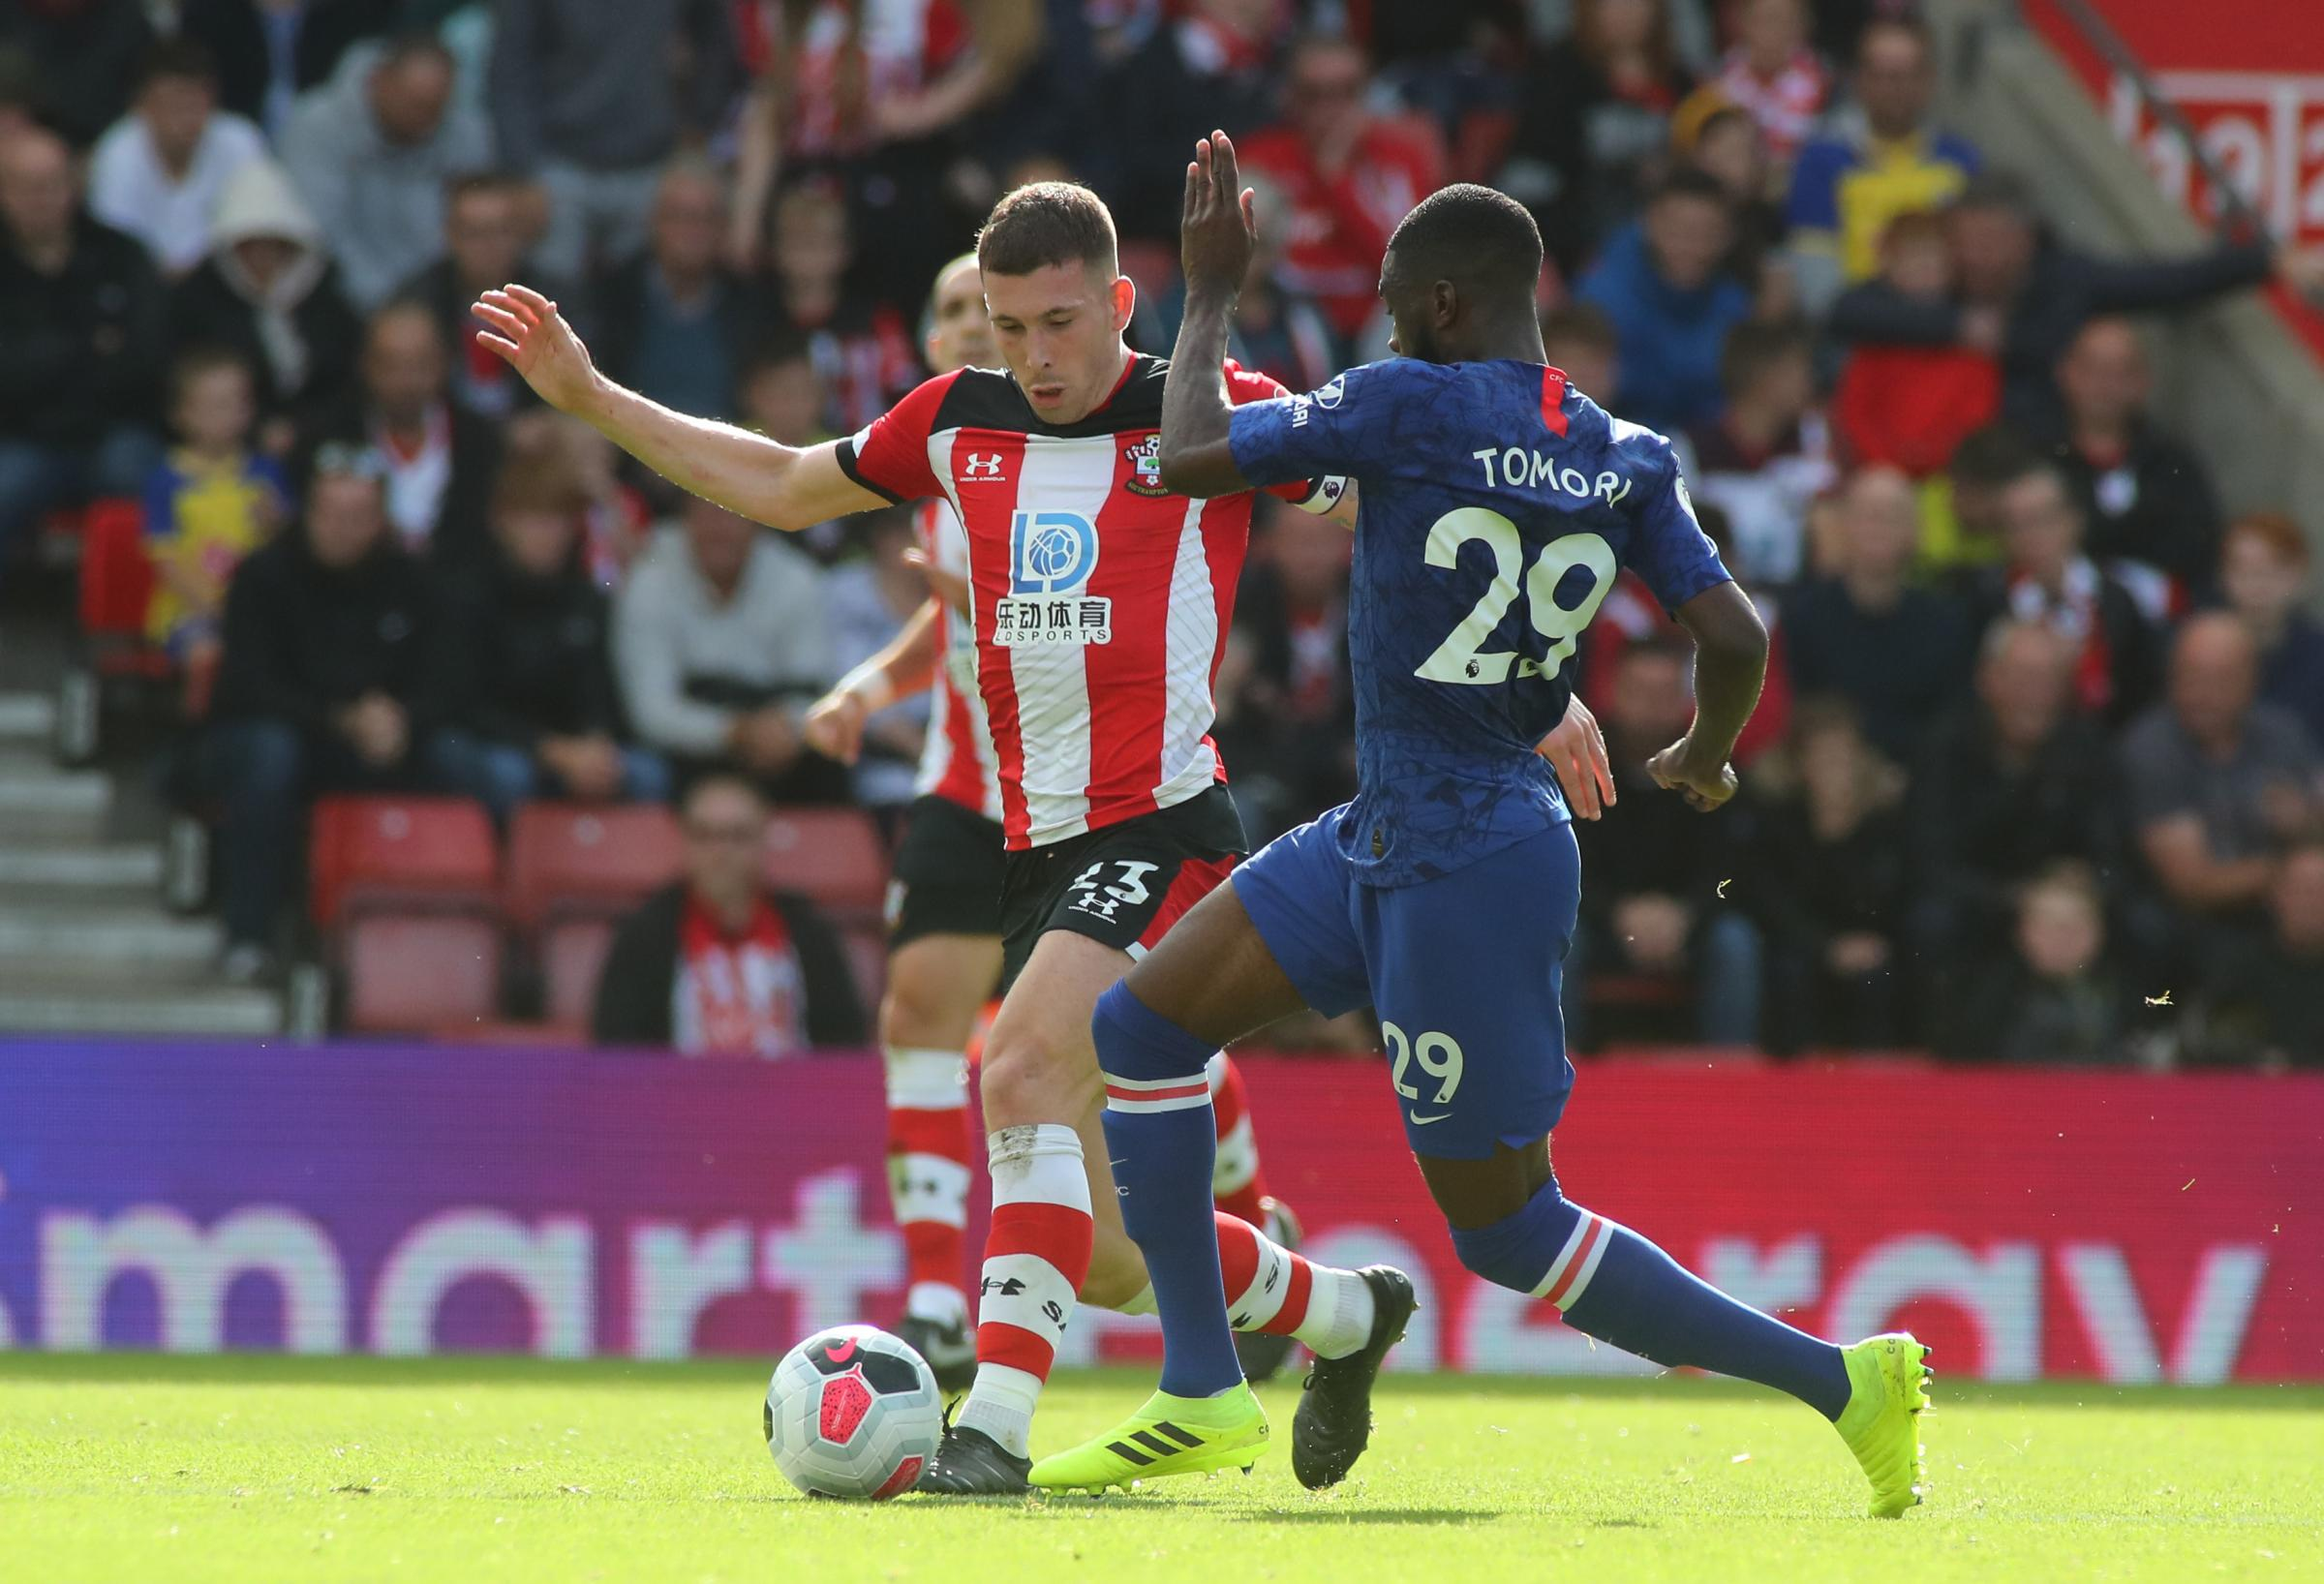 Southampton's team news ahead of the Everton tie